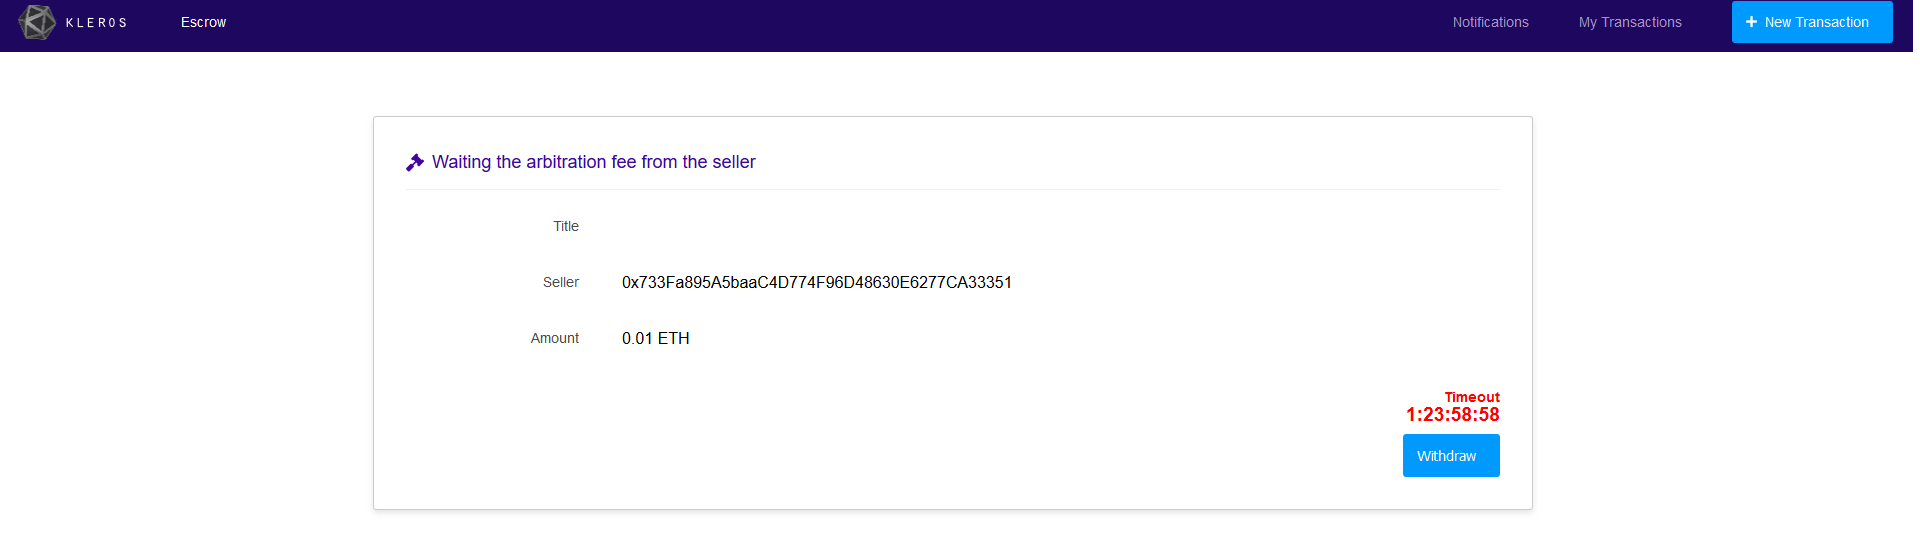 Remove useless withdraw button · Issue #12 · kleros/escrow